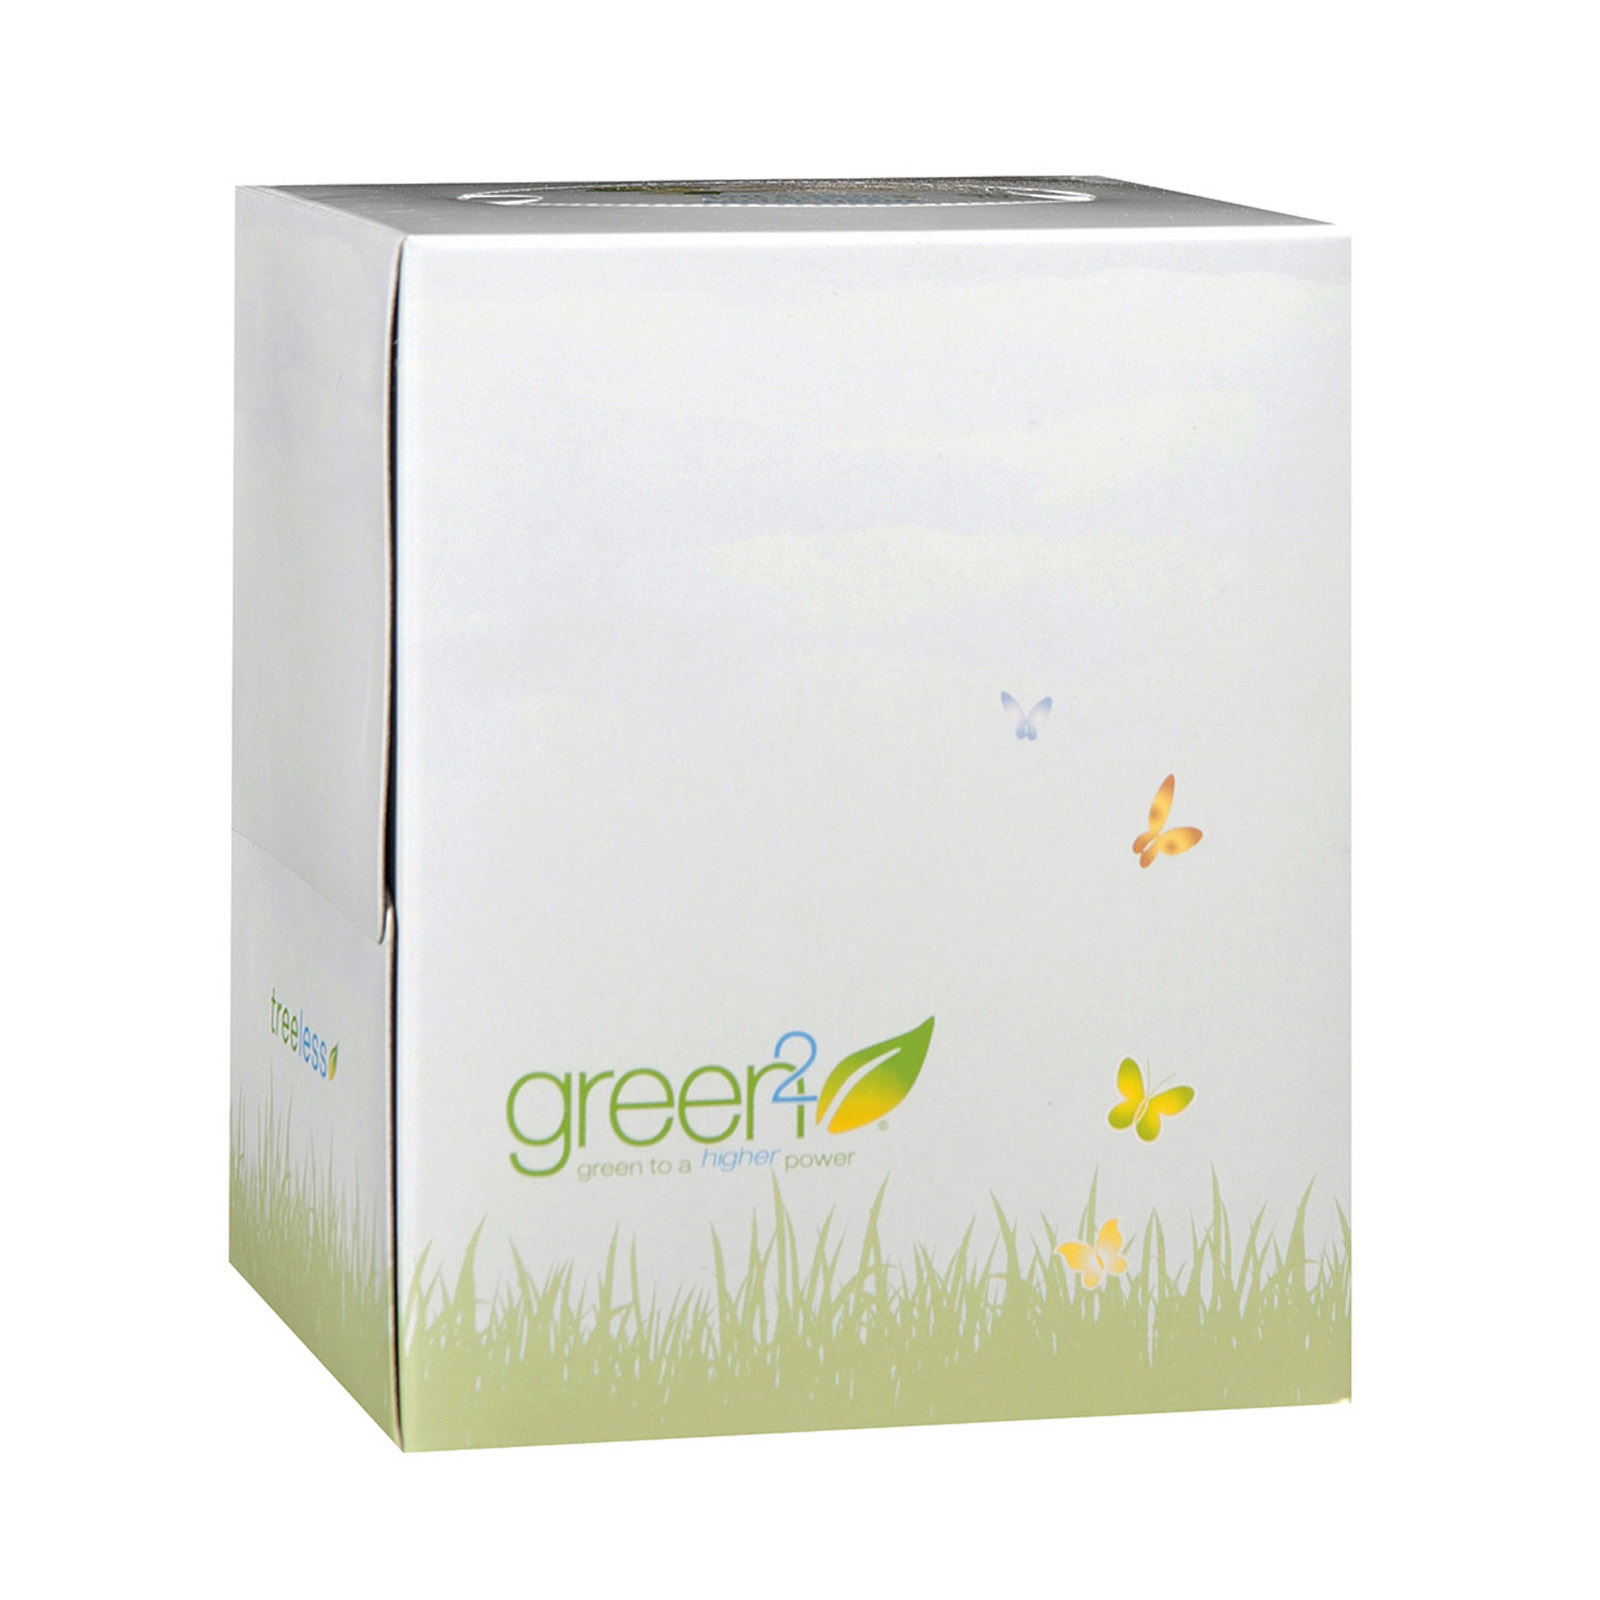 Green2 Facial Tissue - Case of 30